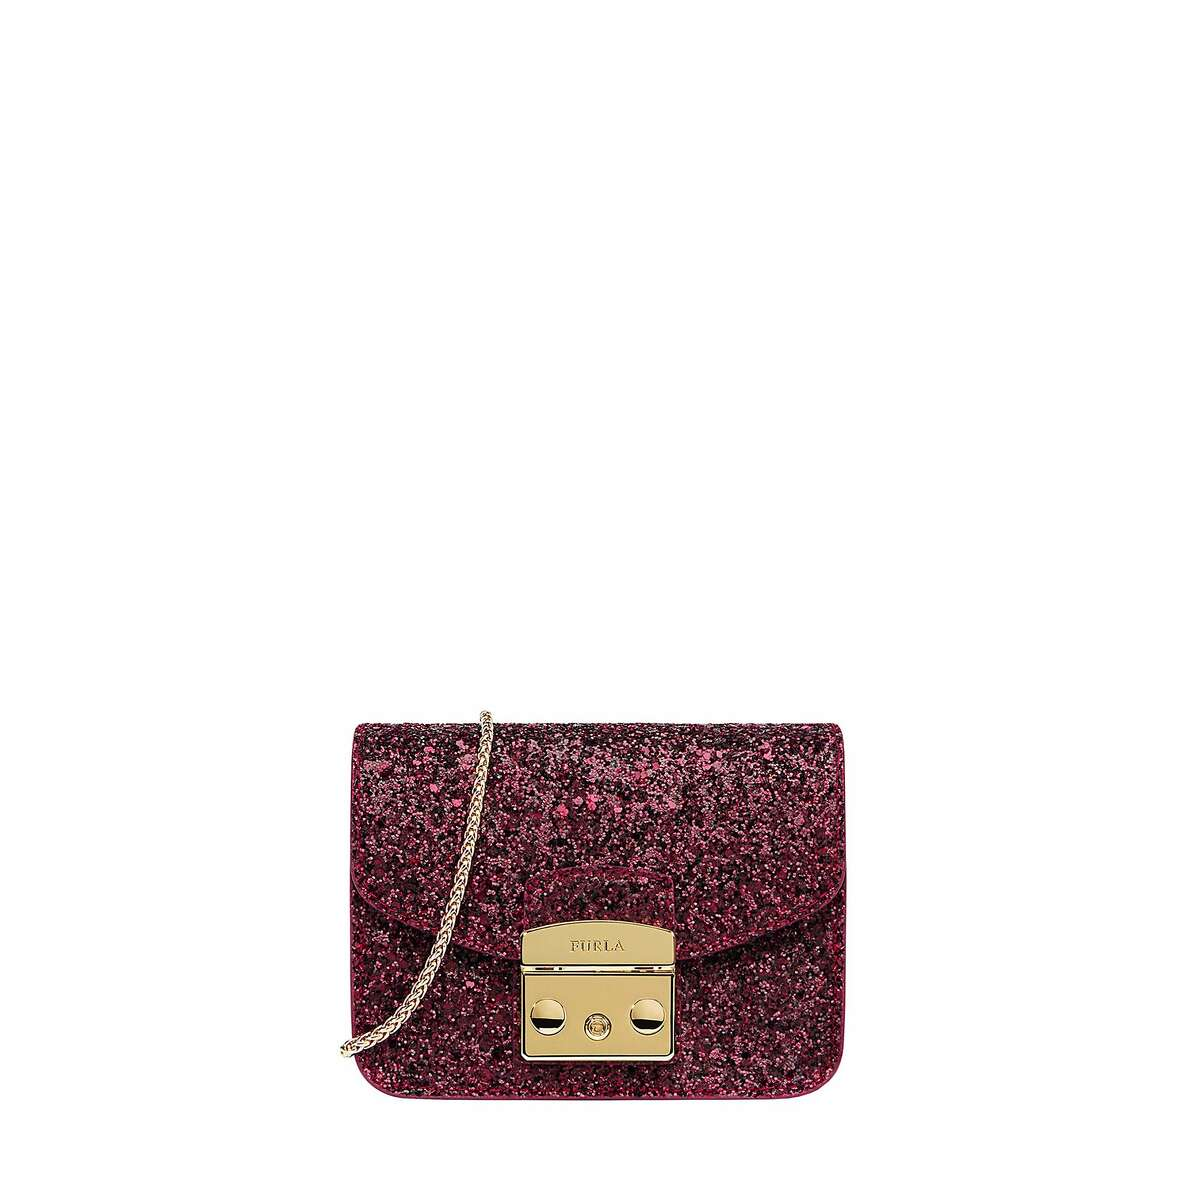 Furla, the Italian accessories maker, has opened a new popup on Union Square that will operate through fall of 2017 at 216 Stockton St. �Among the new items for autumn/winter 2016 is this Metroplis Bolero mini crossbody bag in sparkling red.